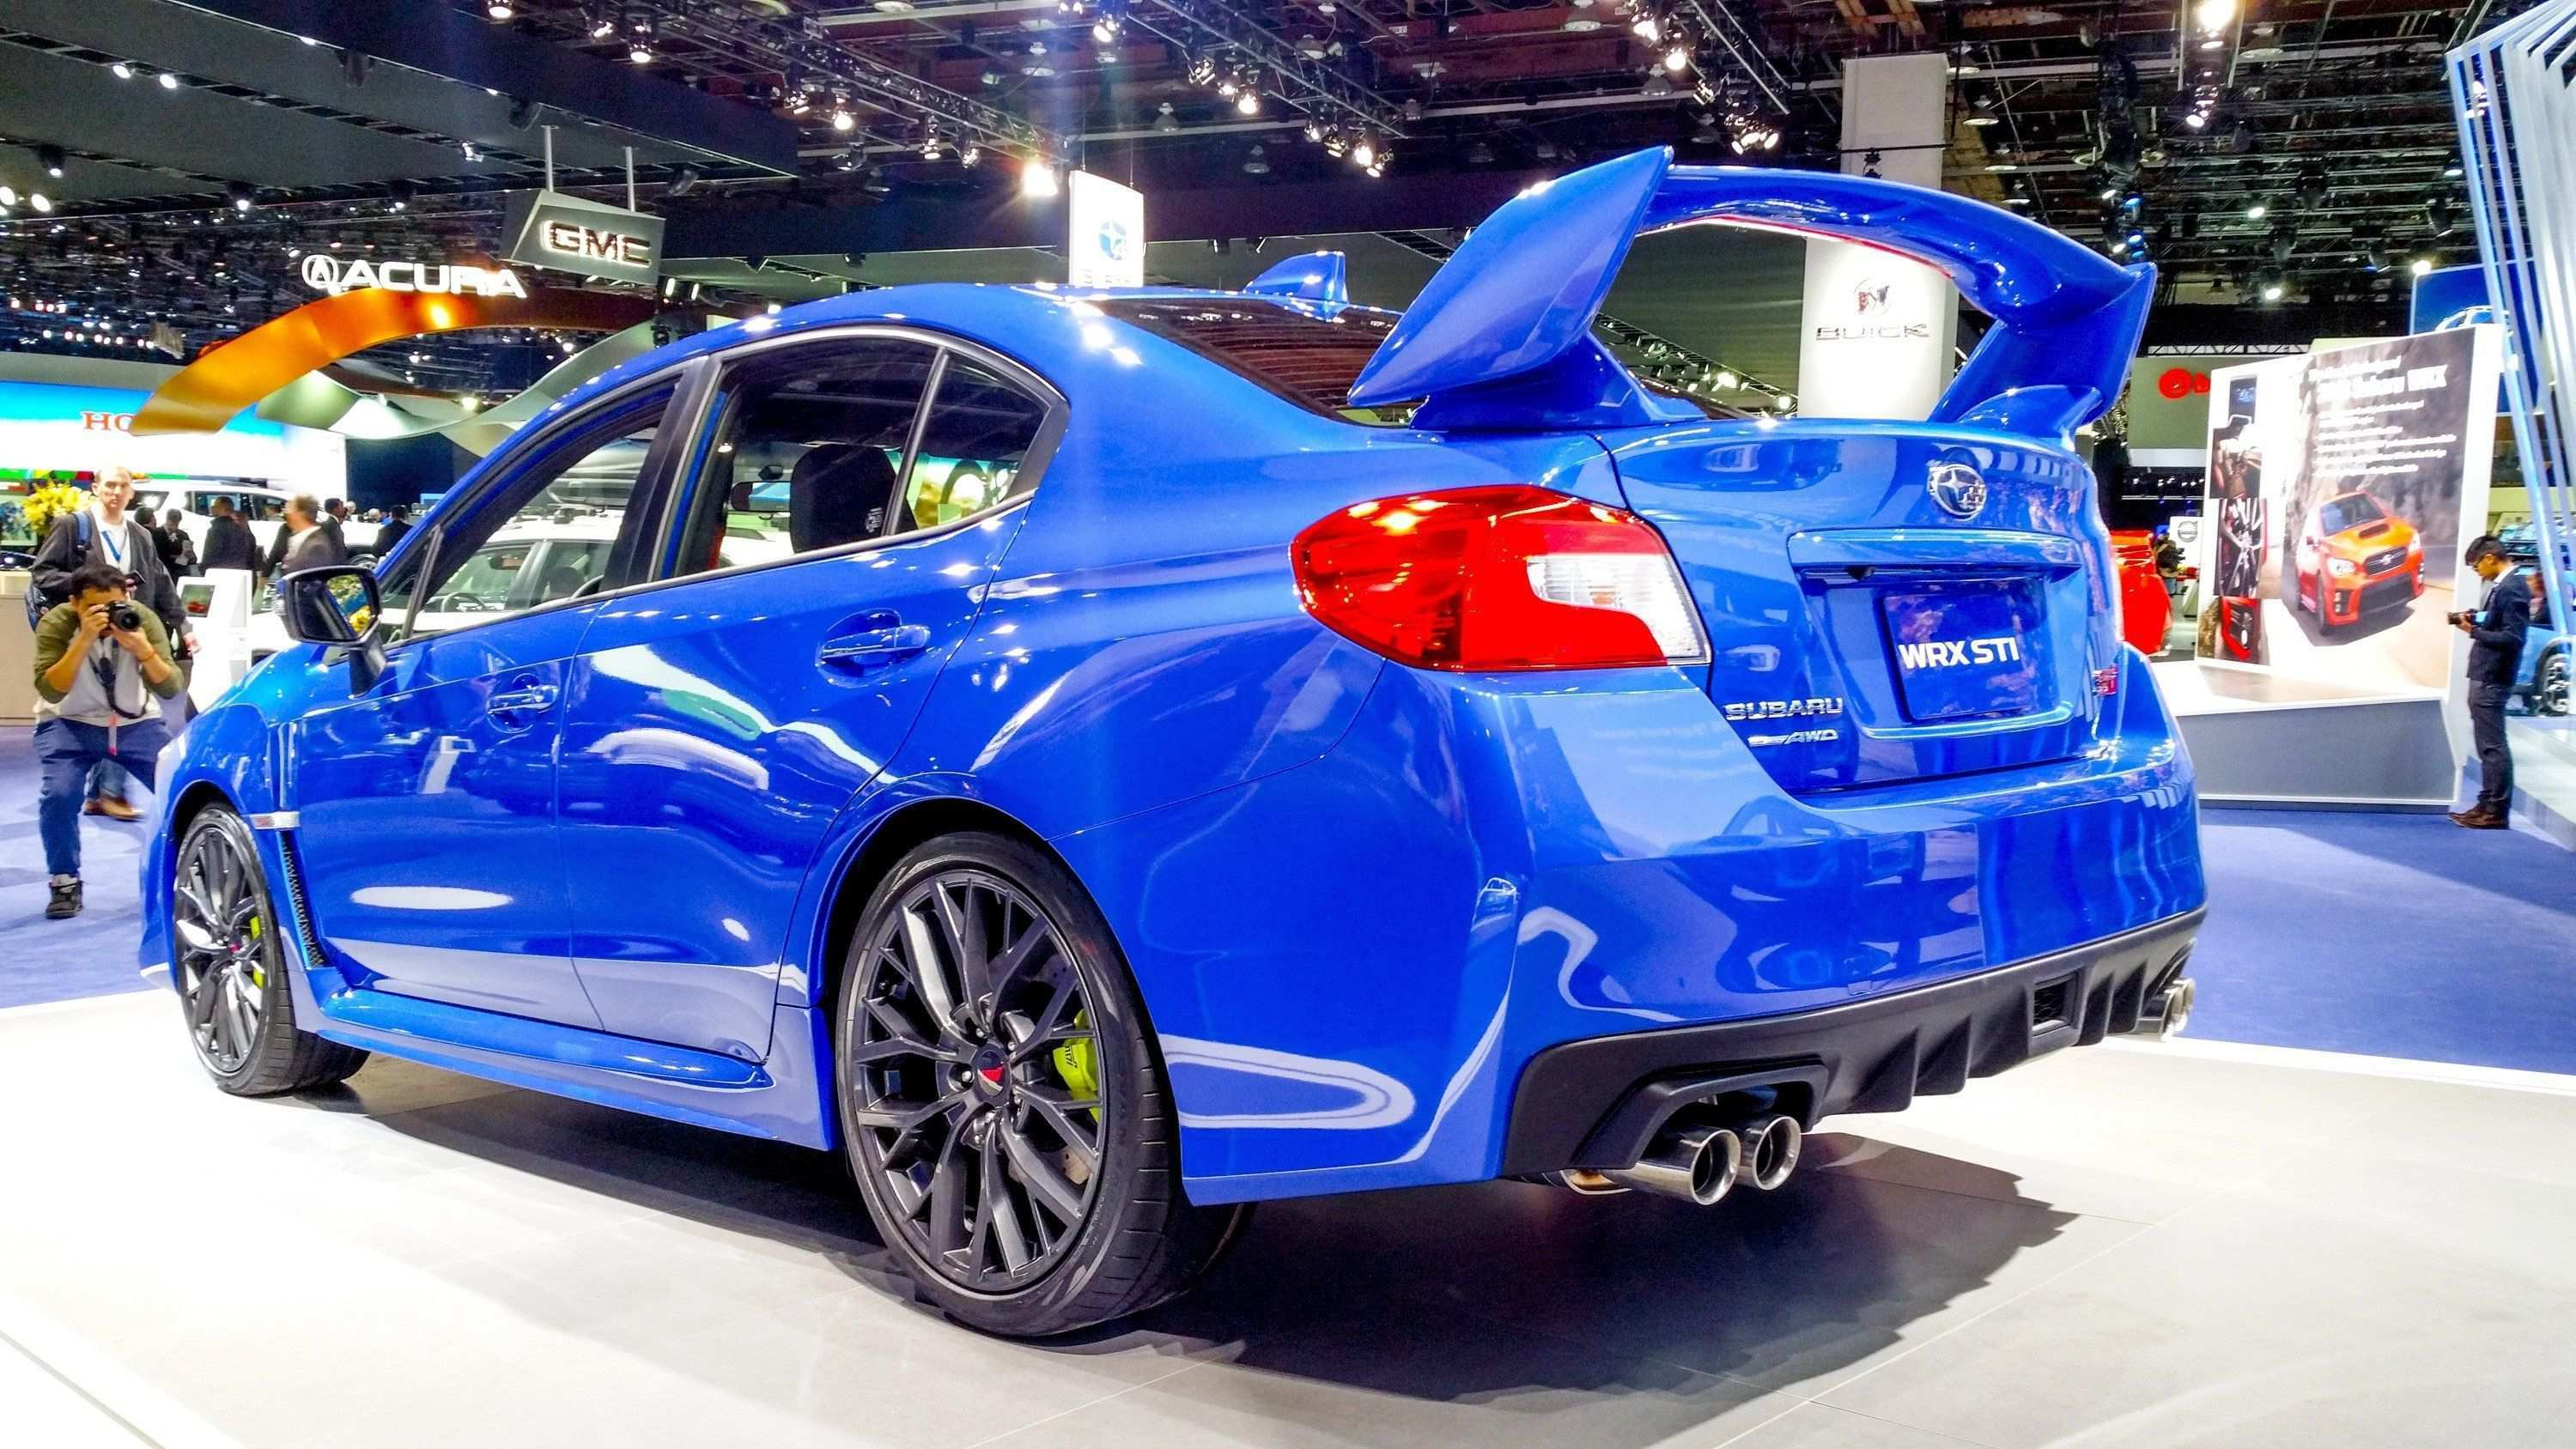 79 Great New 2019 Subaru Wrx Sti 0 60 Performance And New Engine Performance and New Engine by New 2019 Subaru Wrx Sti 0 60 Performance And New Engine